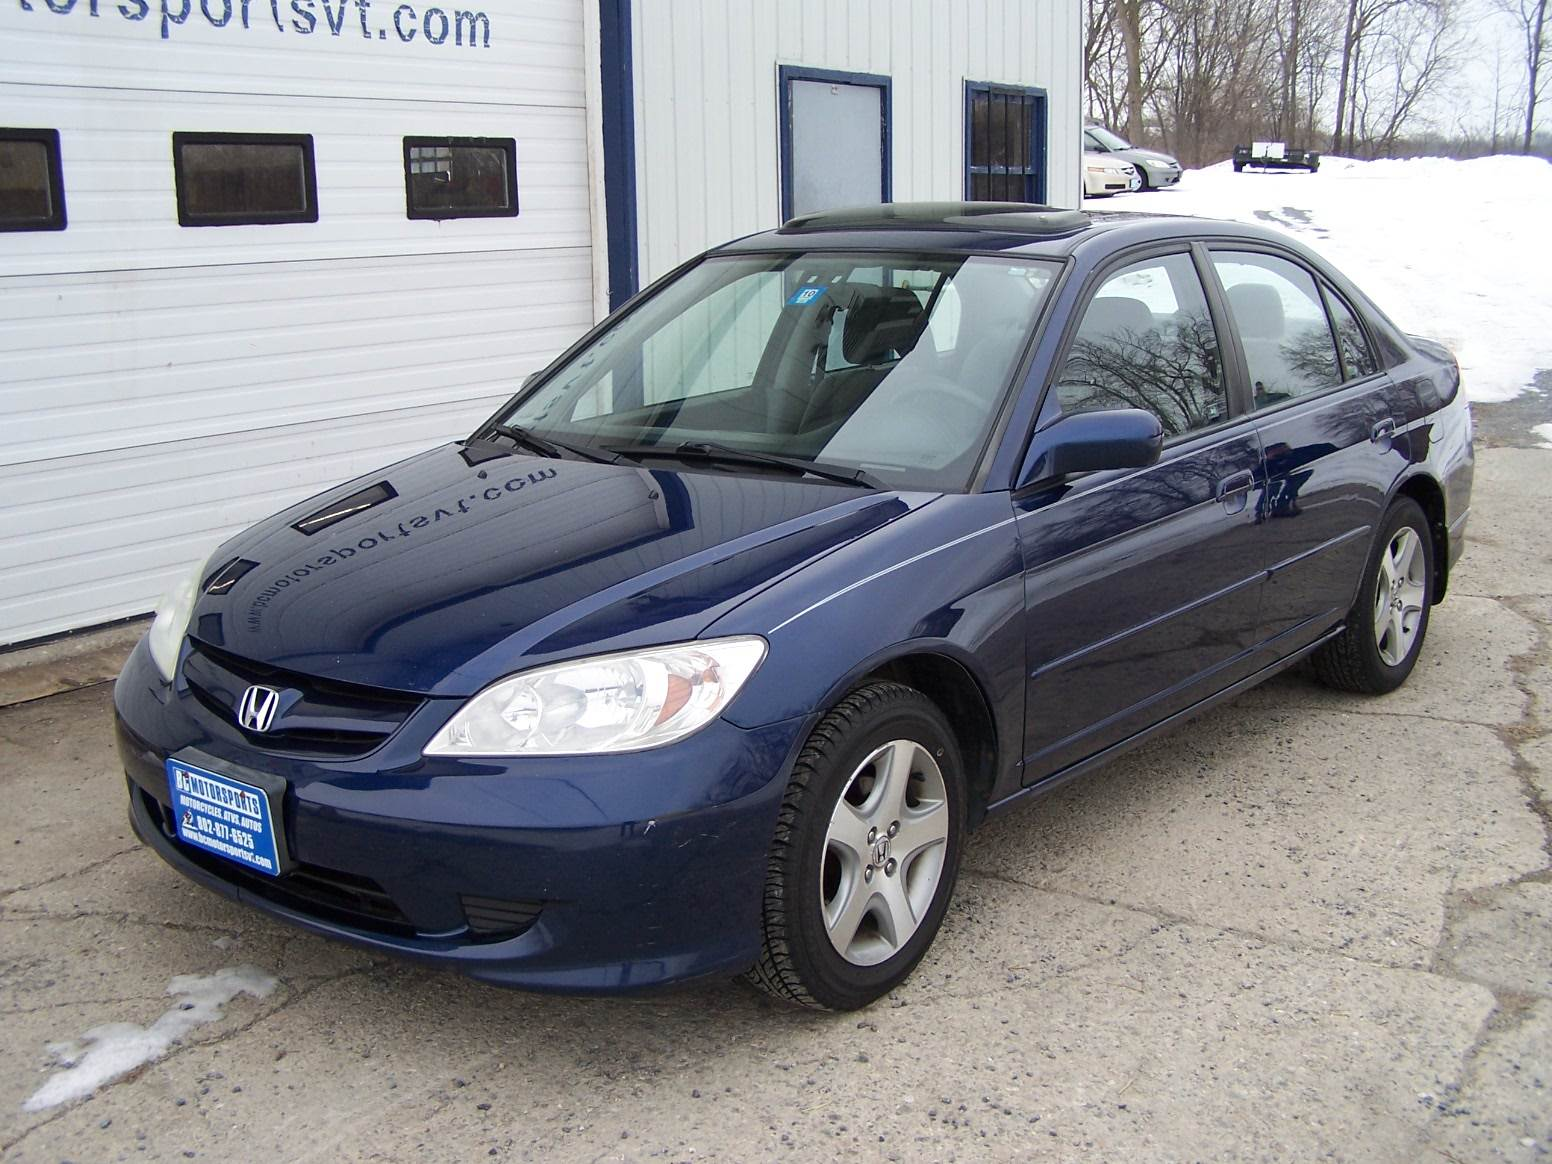 2004 Other Civic EX in Ferrisburg, Vermont